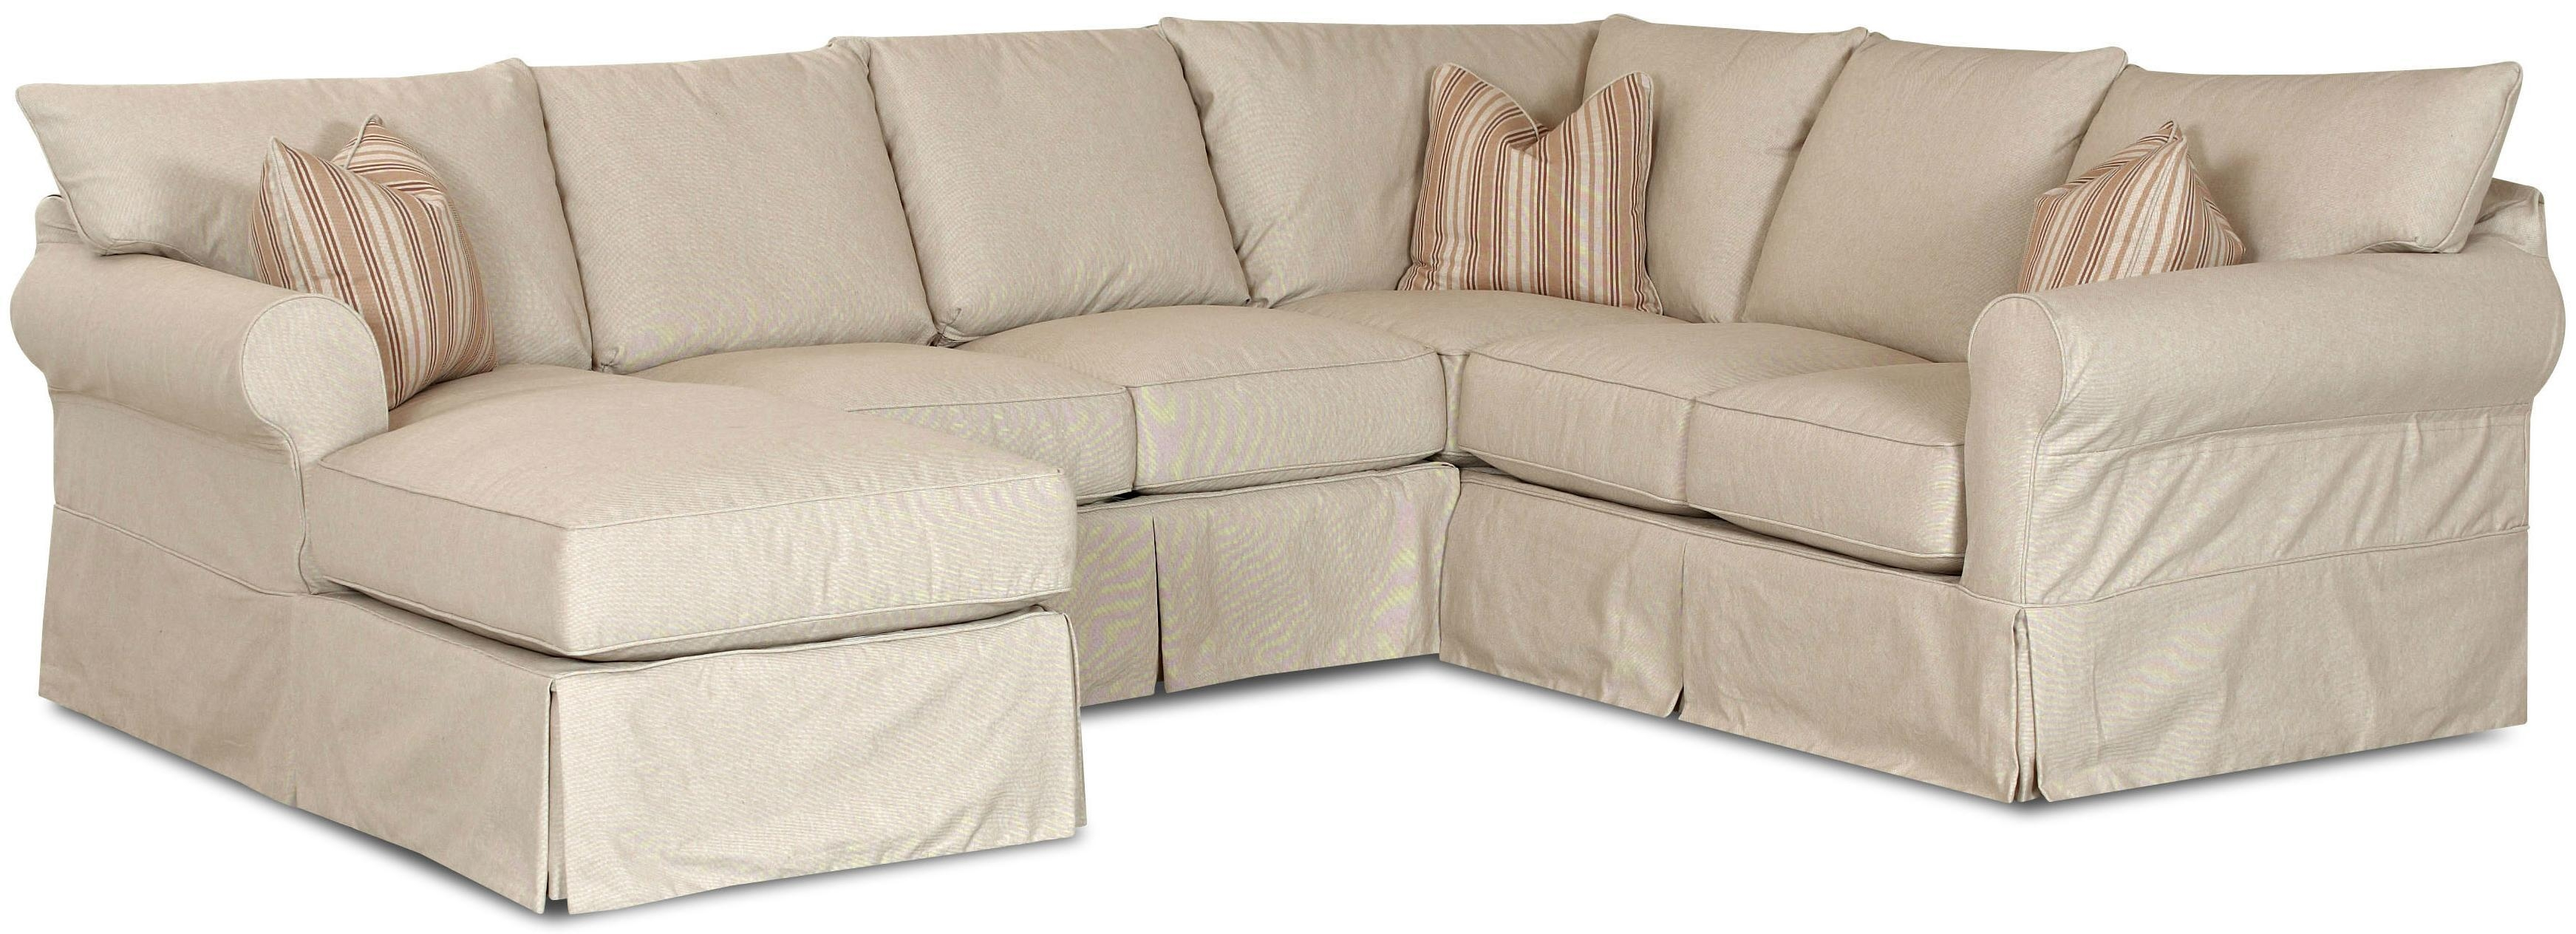 Inspirations: Interesting Furniture Sectional Sofa Slipcovers For For Sofas Cover For Sectional Sofas (View 5 of 20)